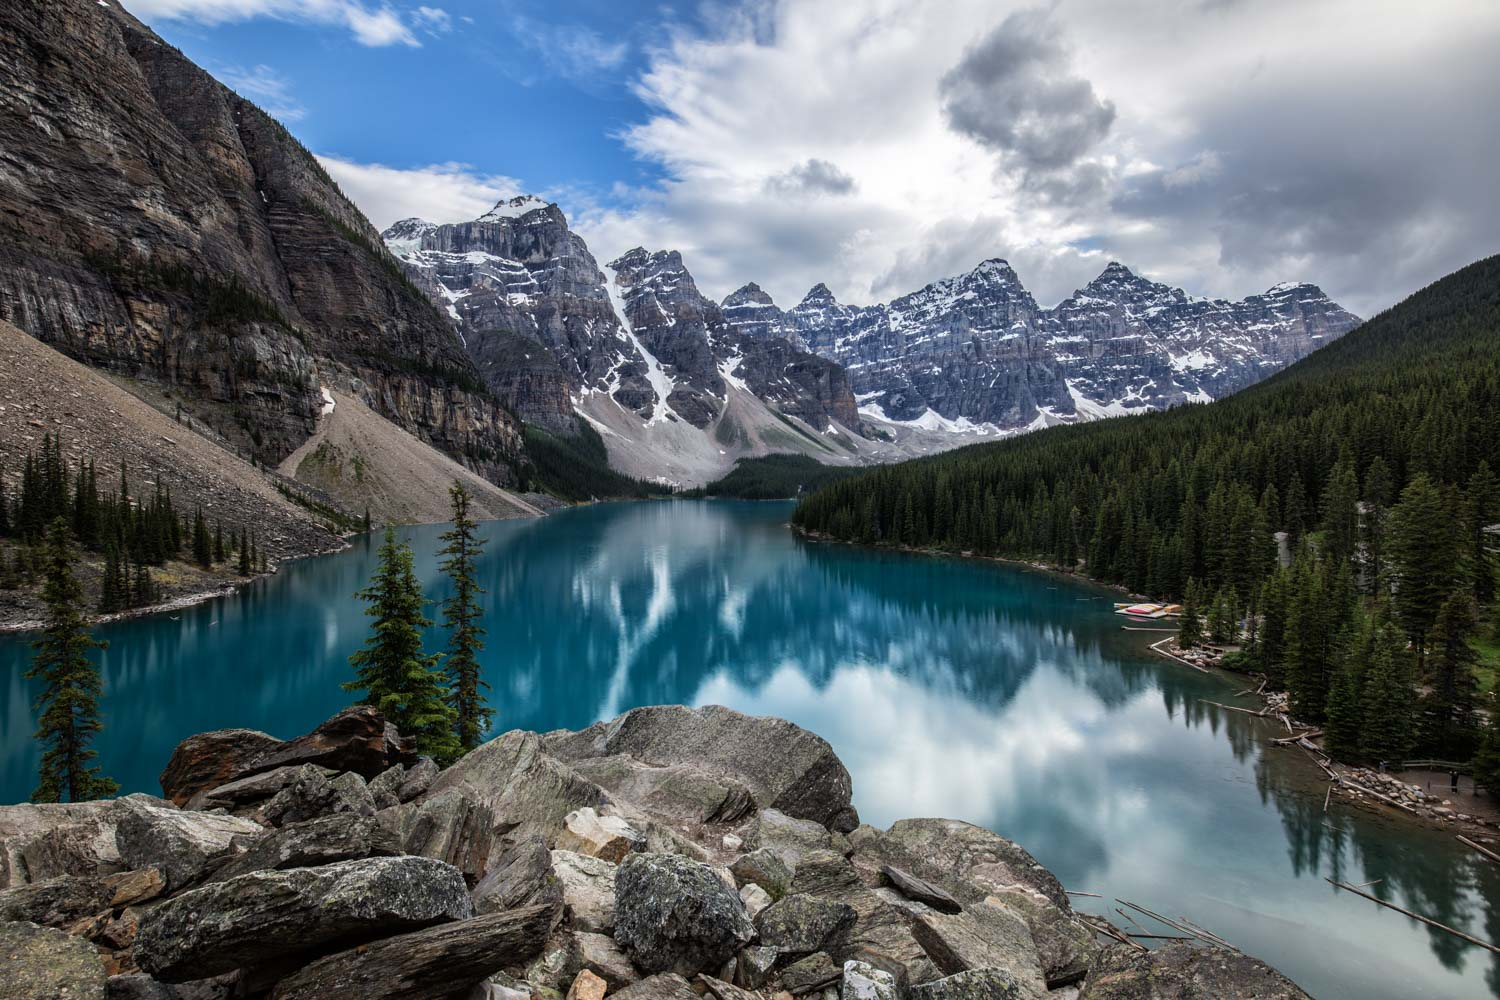 Moraine Lake - Banff National Park, Kanada - Landschaftsfoto